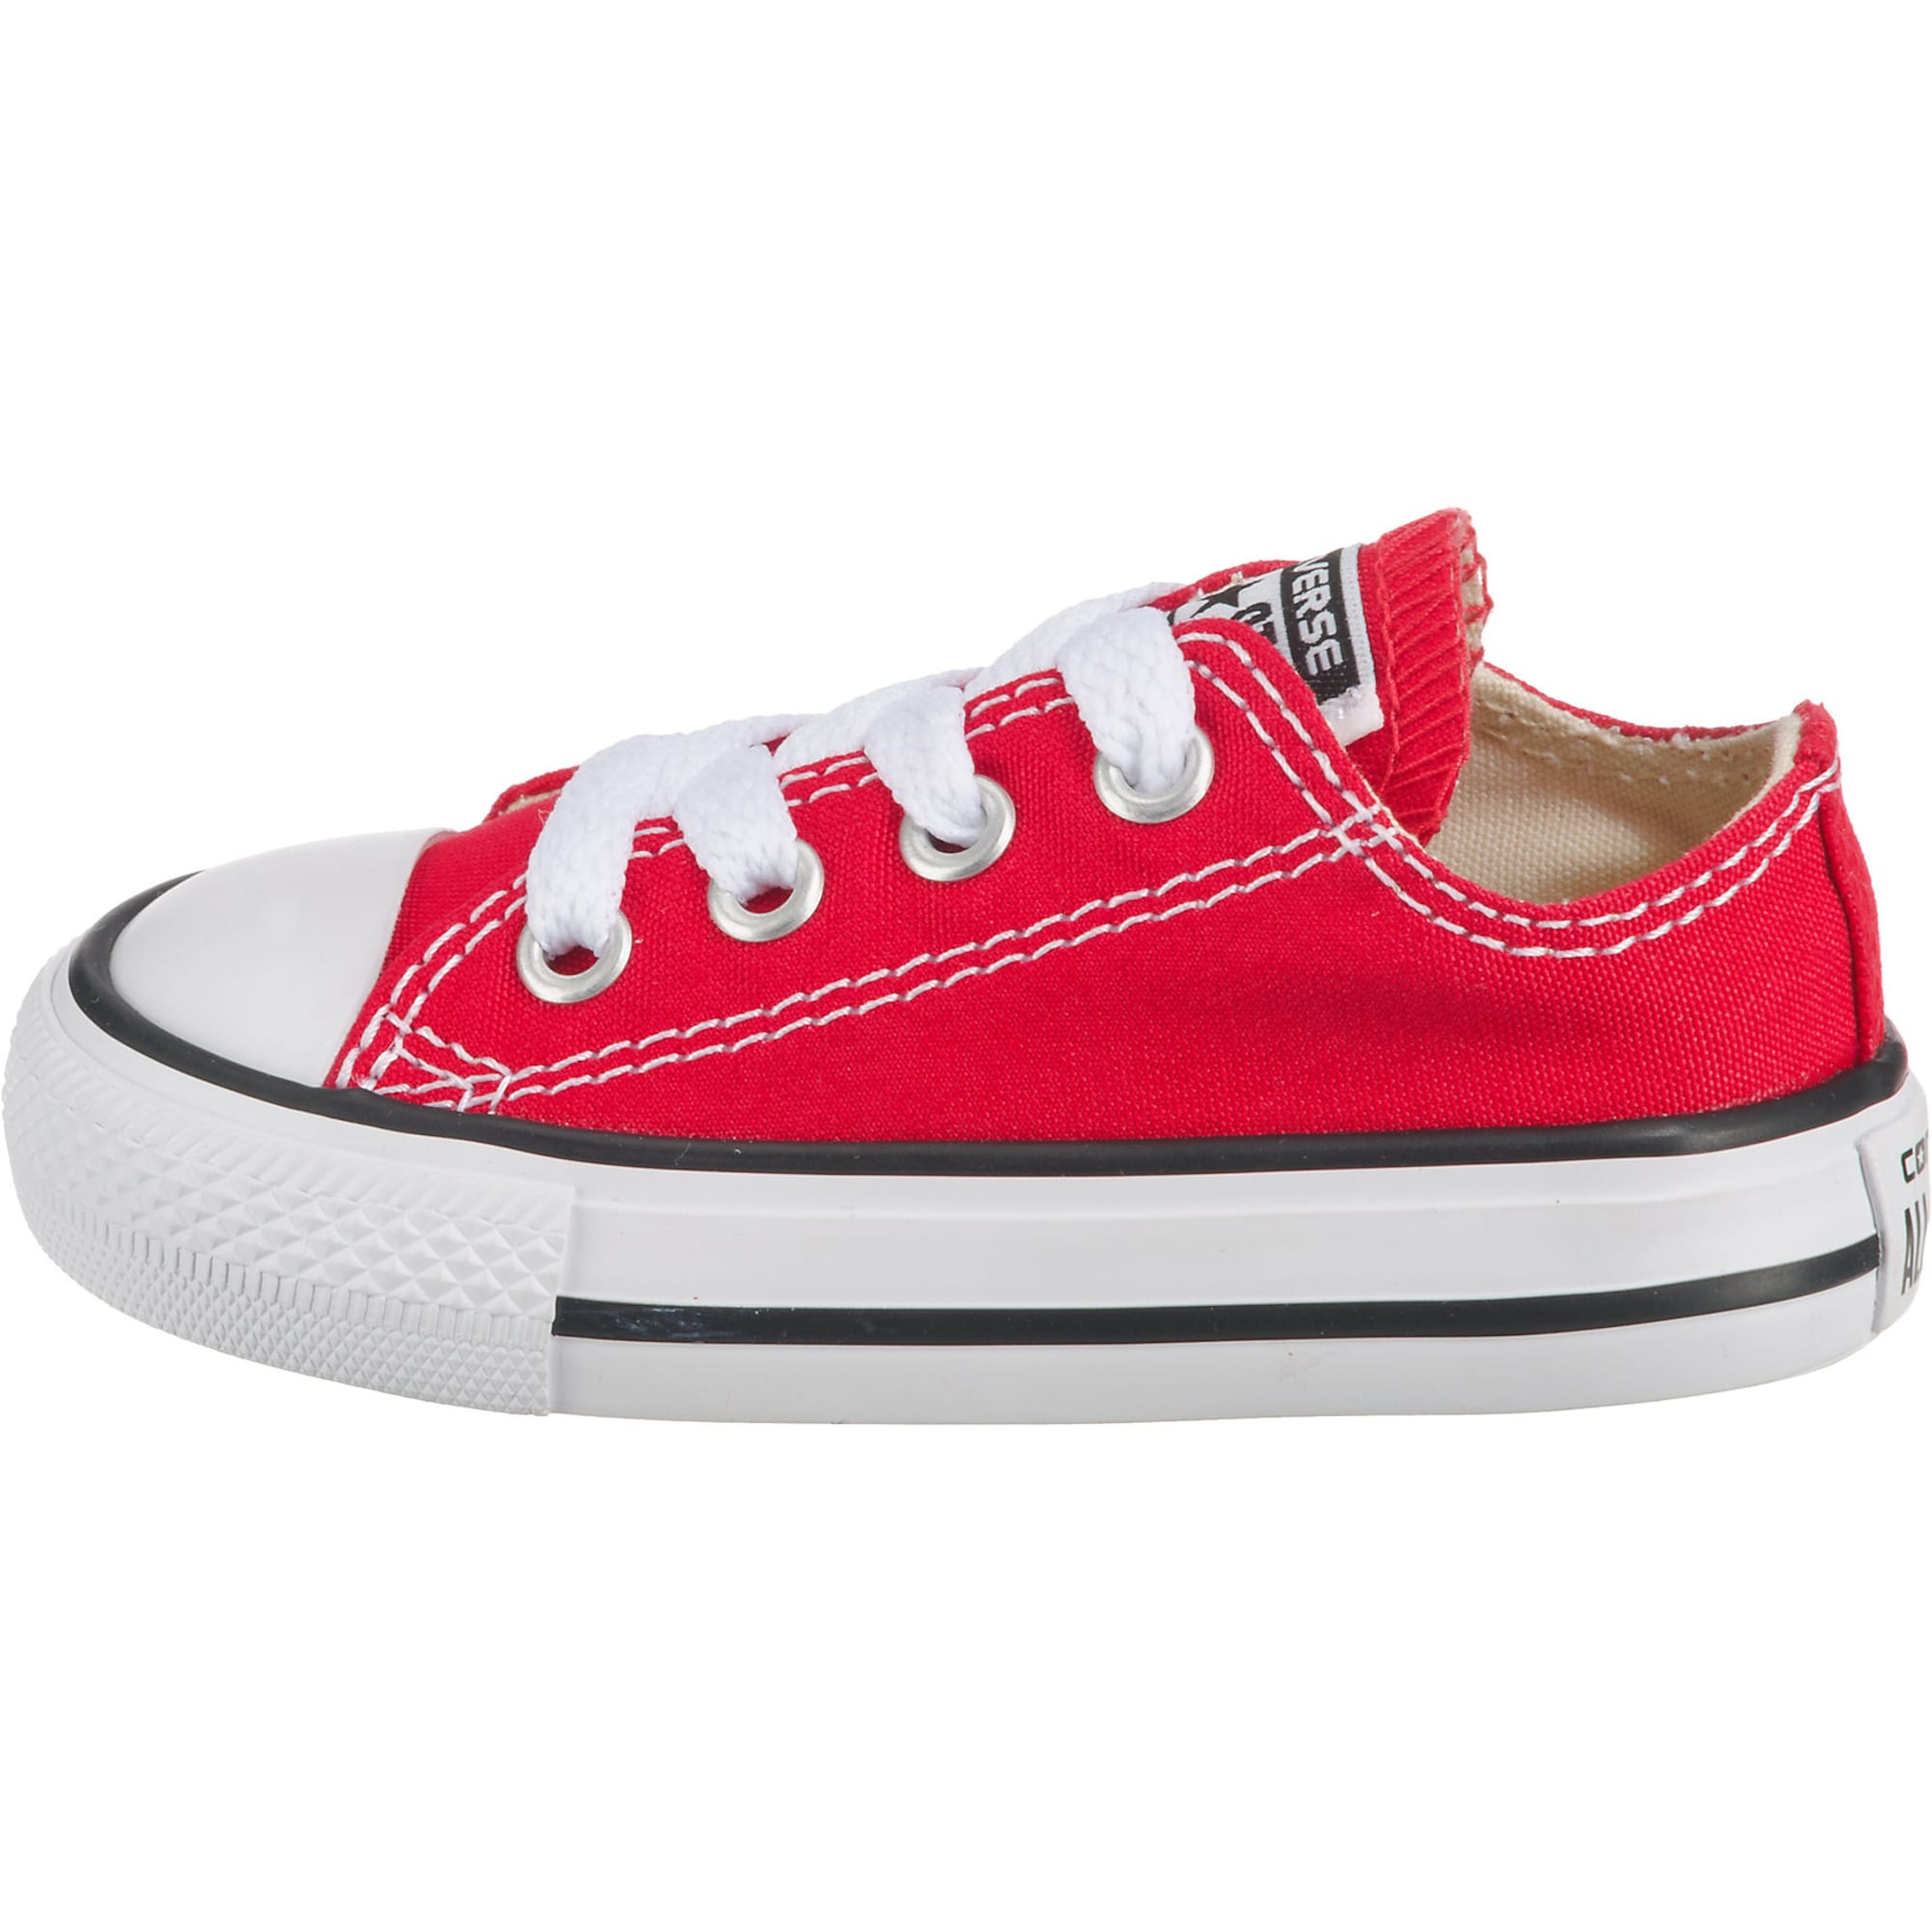 CONVERSE, Jongens Sneakers 'Chuck Taylor All Stars OX', rood - wit